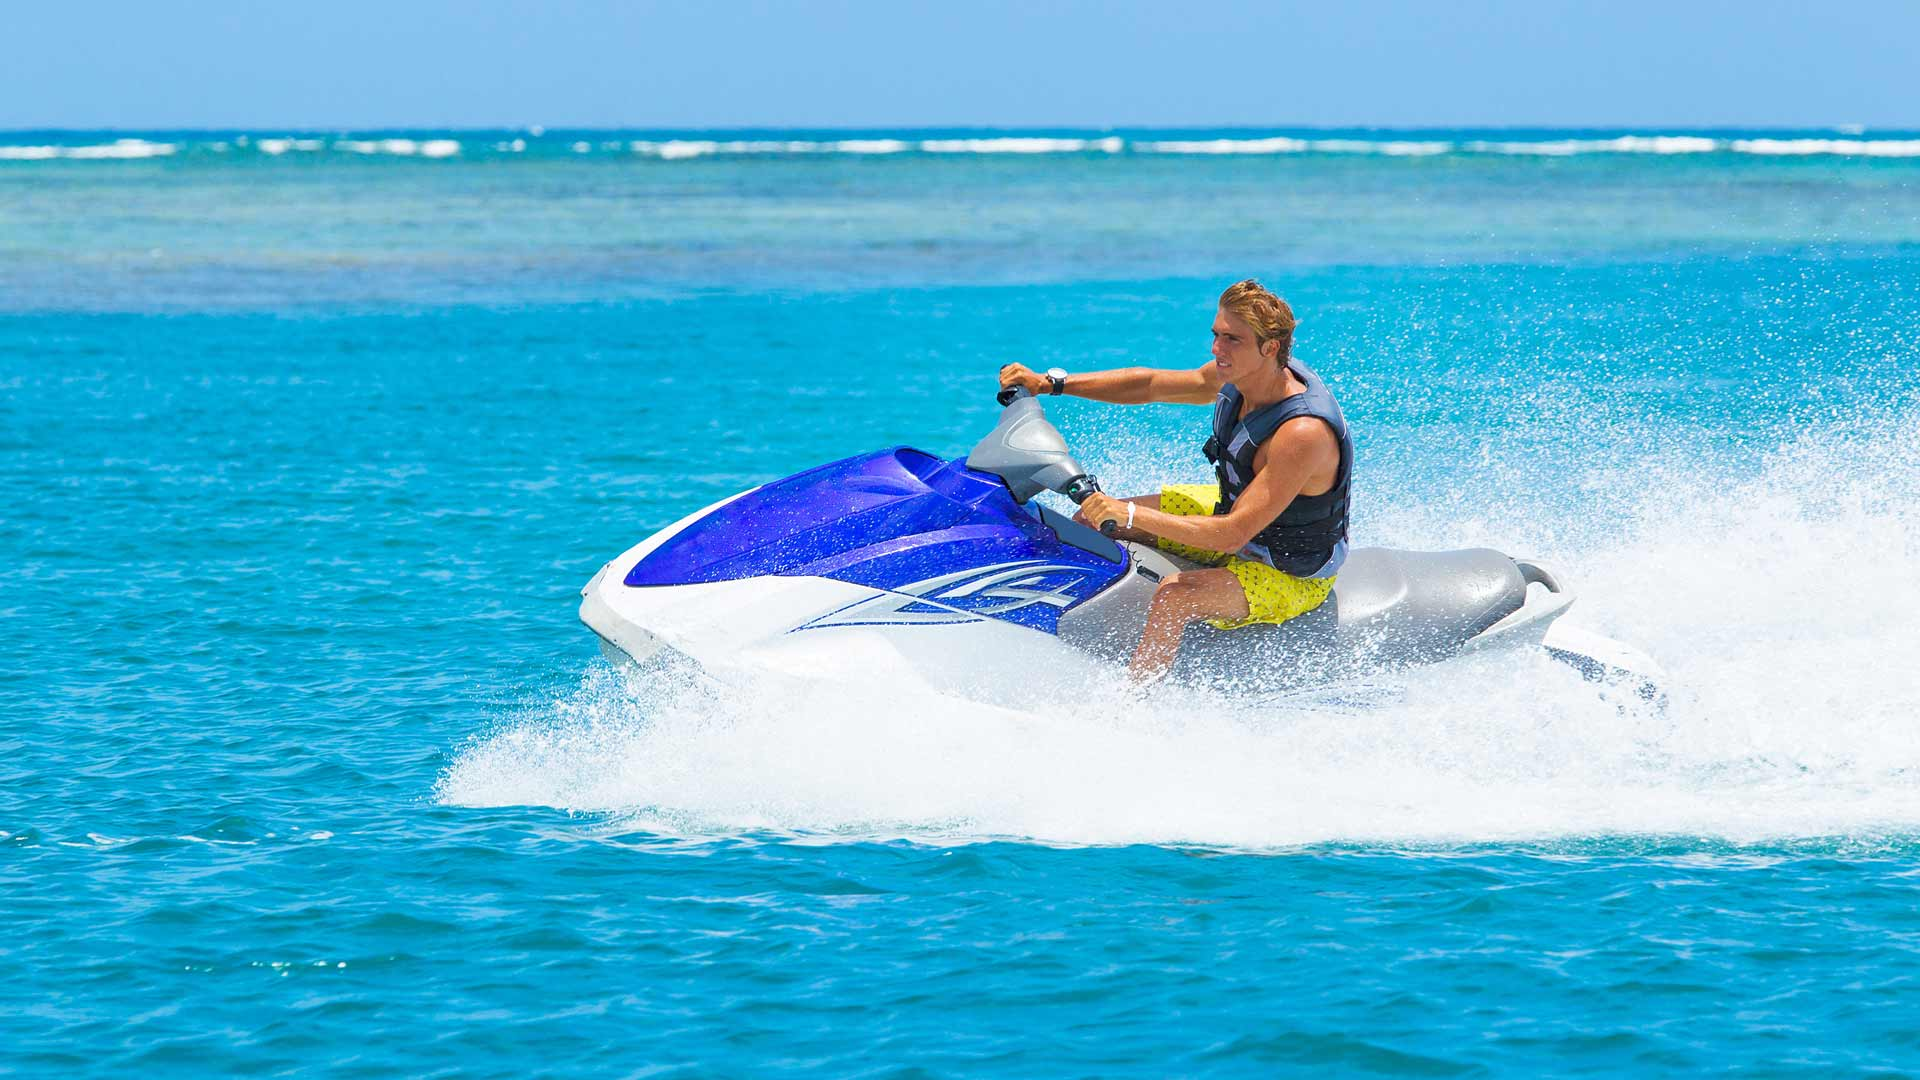 Maui Jet Ski - Maui Activities at the Best Prices - Maui Tickets for ...